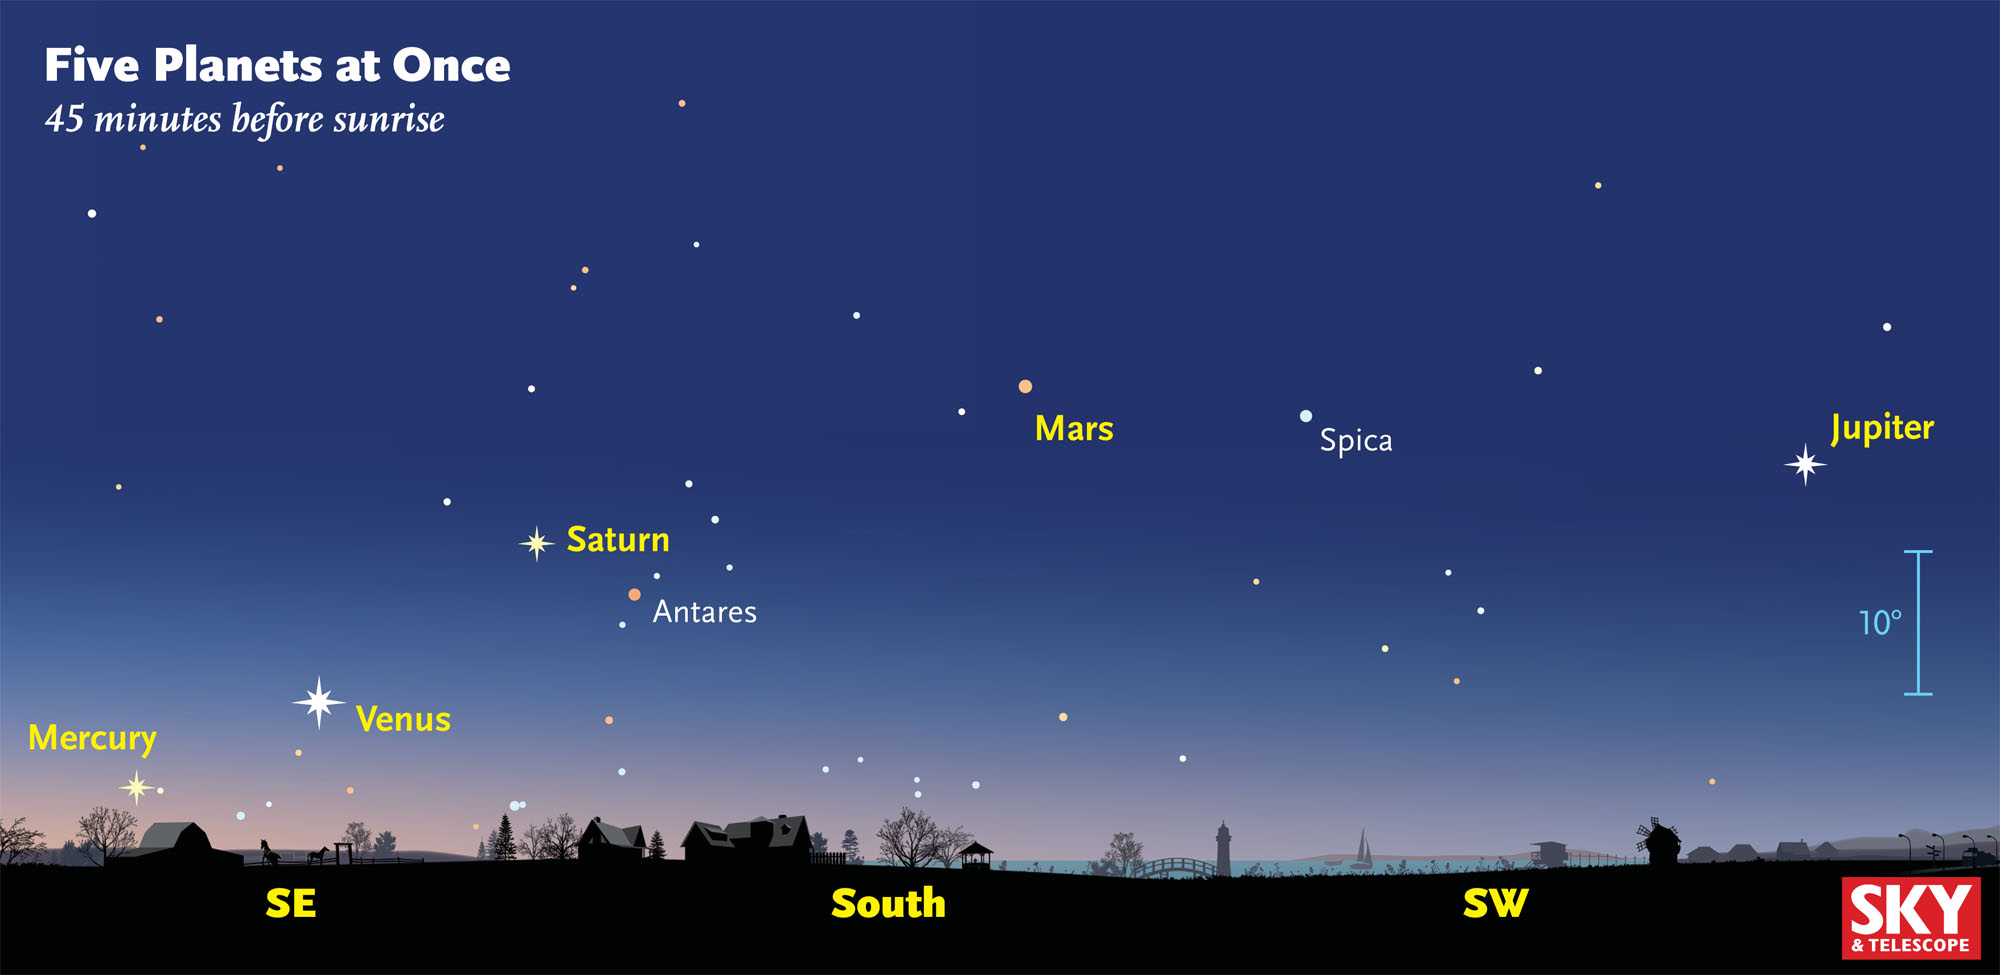 How and When to See Five Planets at Once - Sky & Telescope